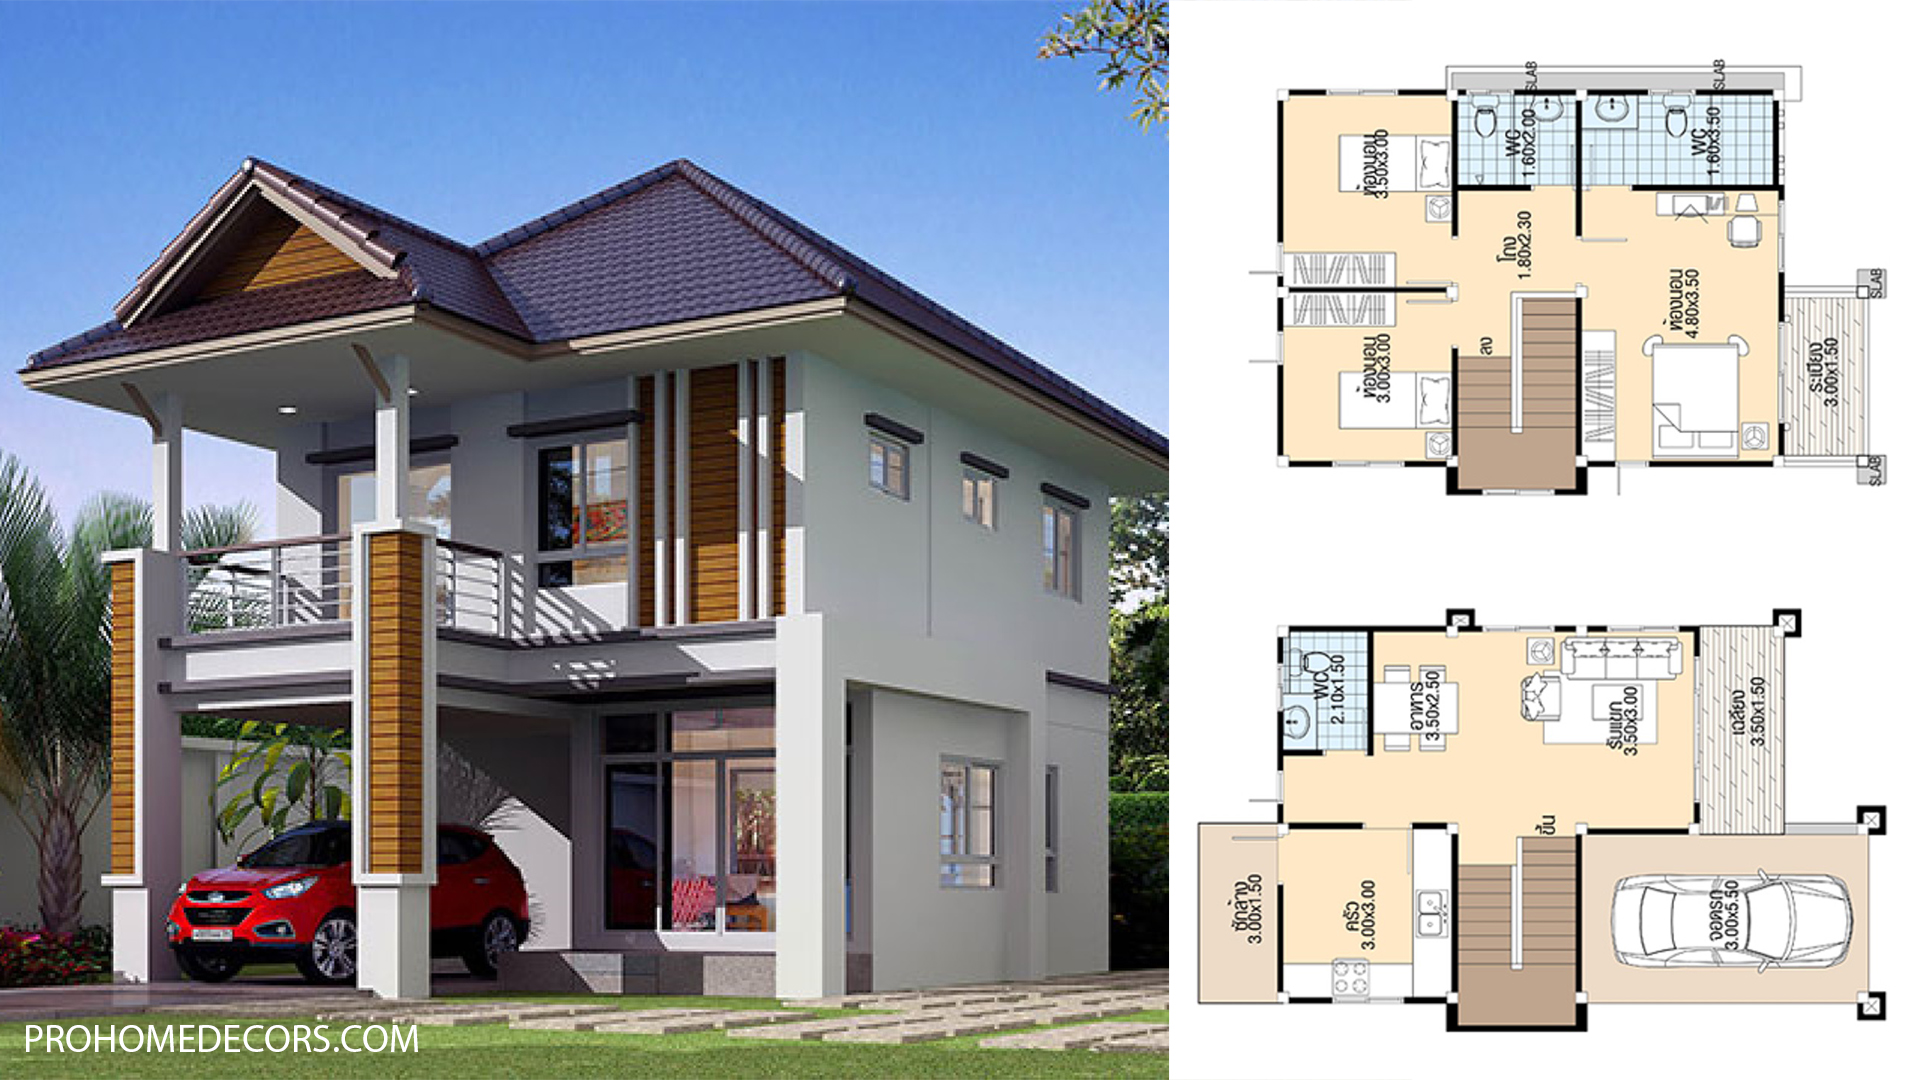 Home Plans 7.5×10 Meter with 3 Bedrooms